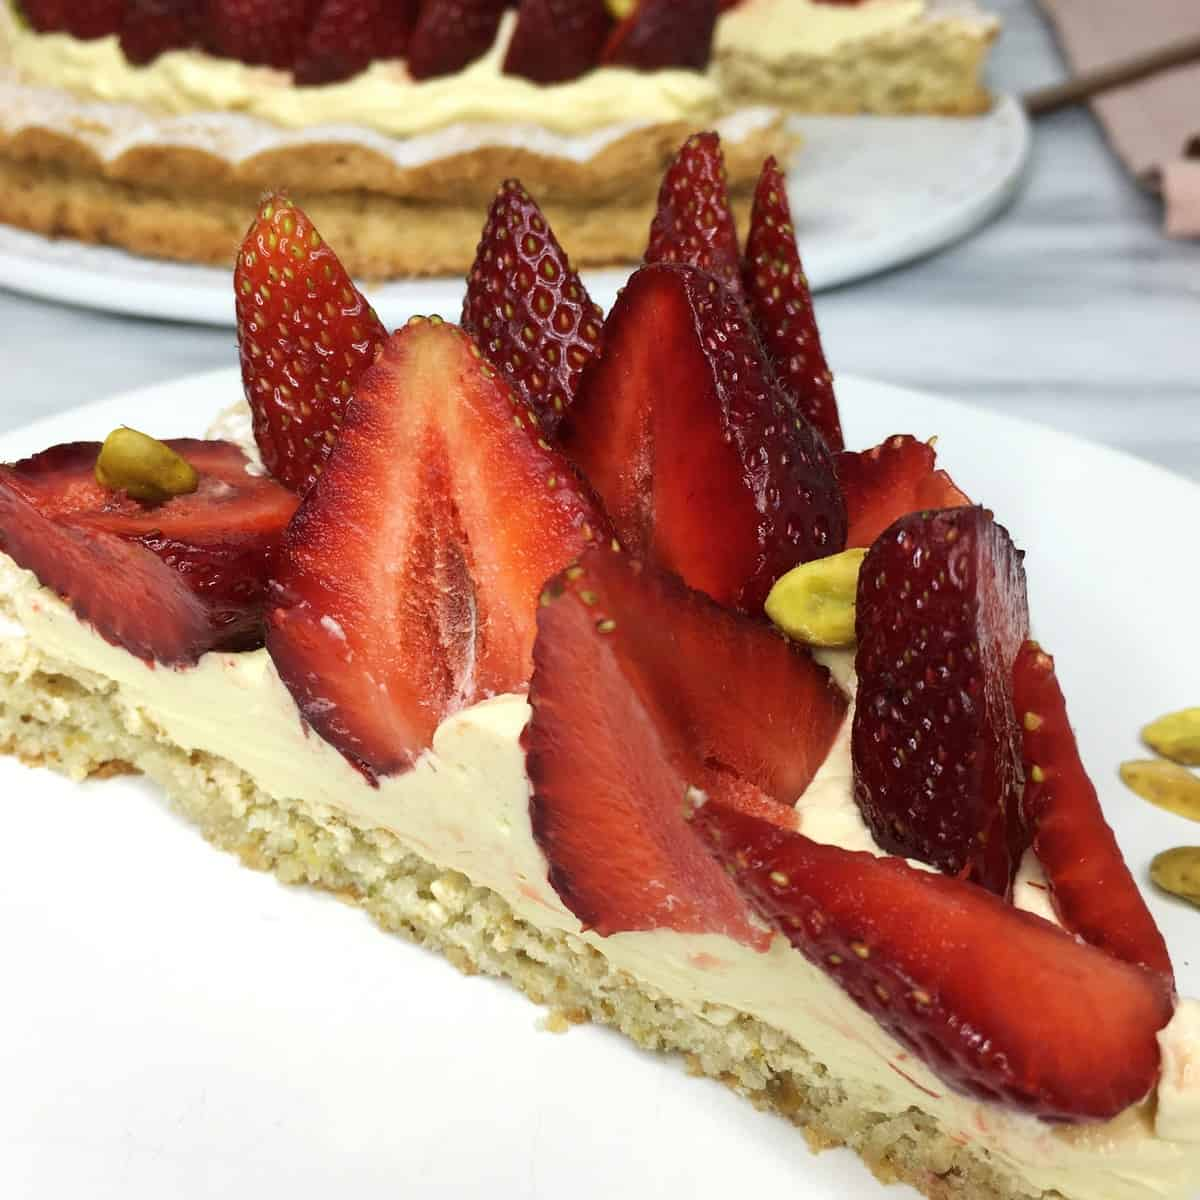 A slice of pistachio dacquoise topped strawberry halves and the rest of the cake on background